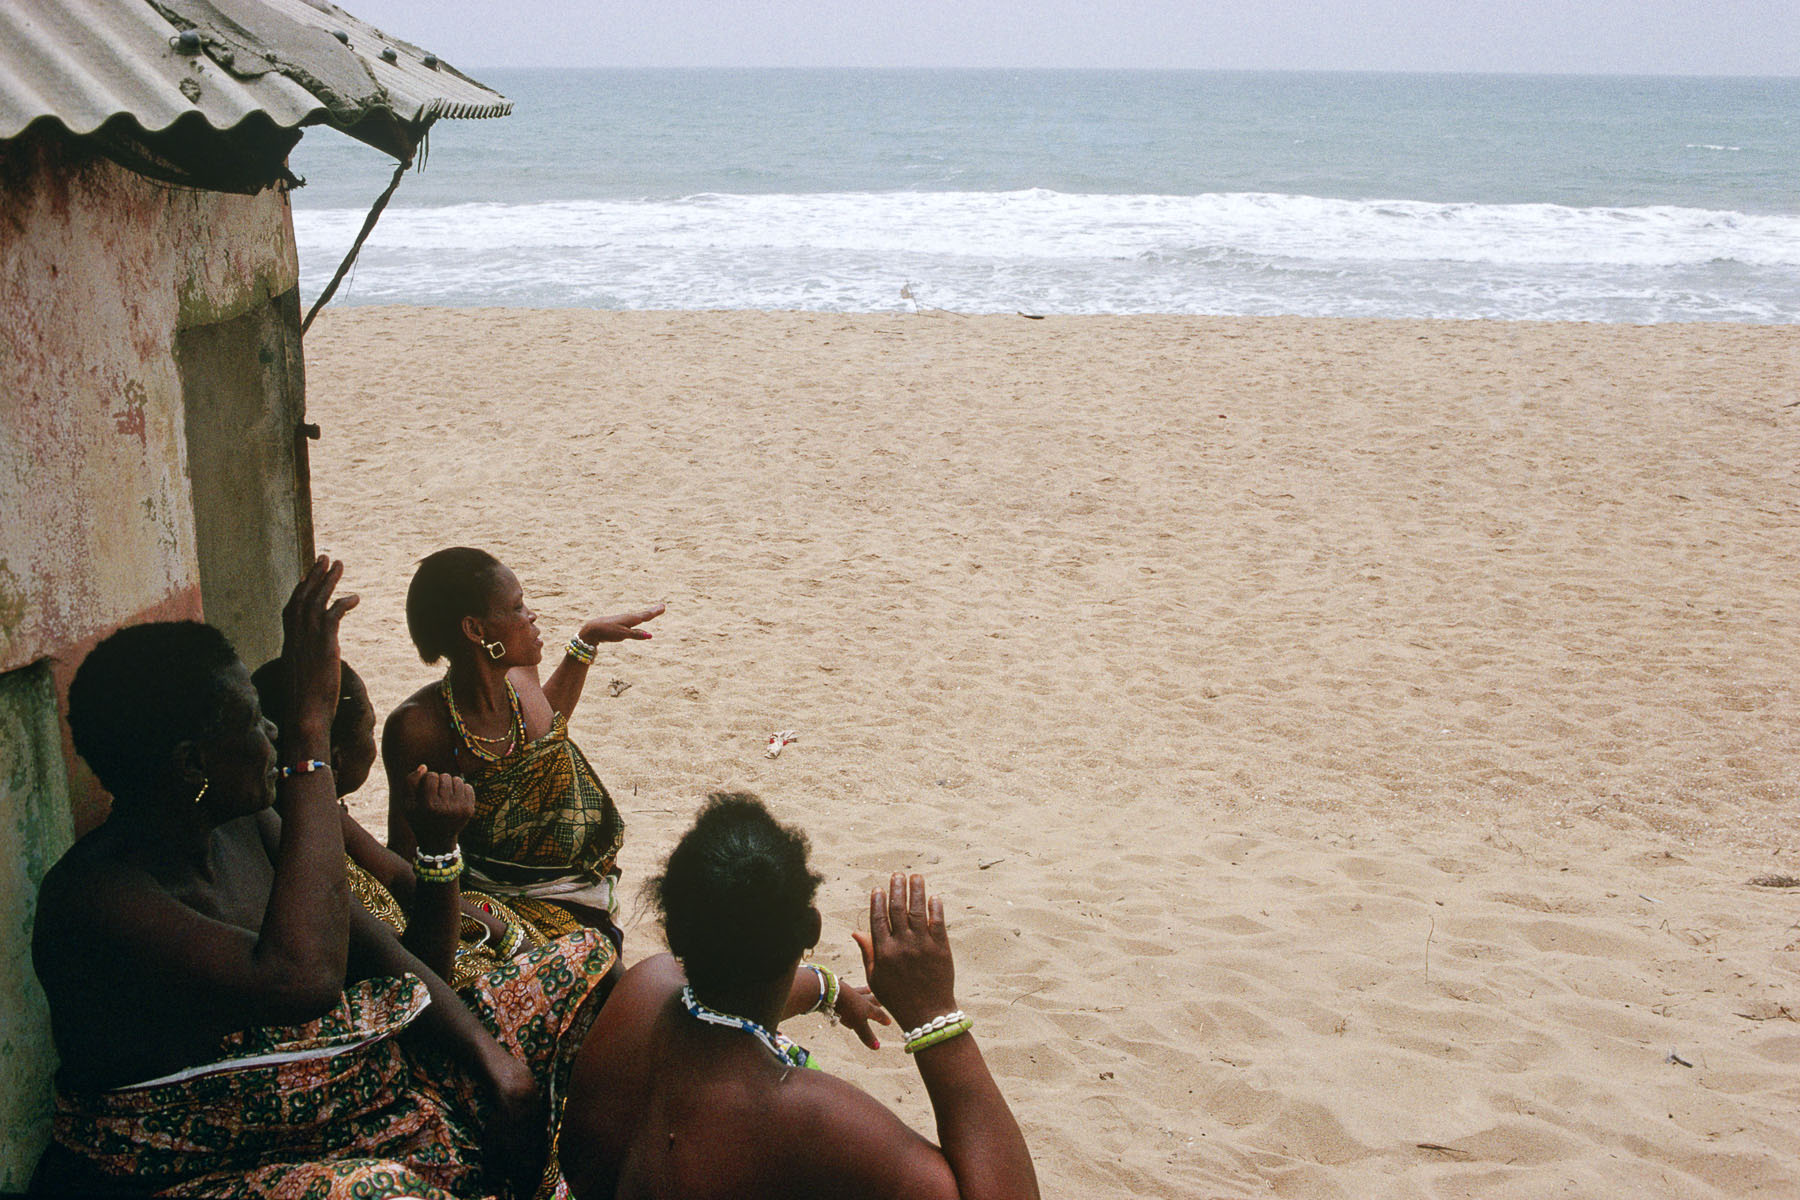 Ceremony for Mammy Wata, sea divinity in February 1998